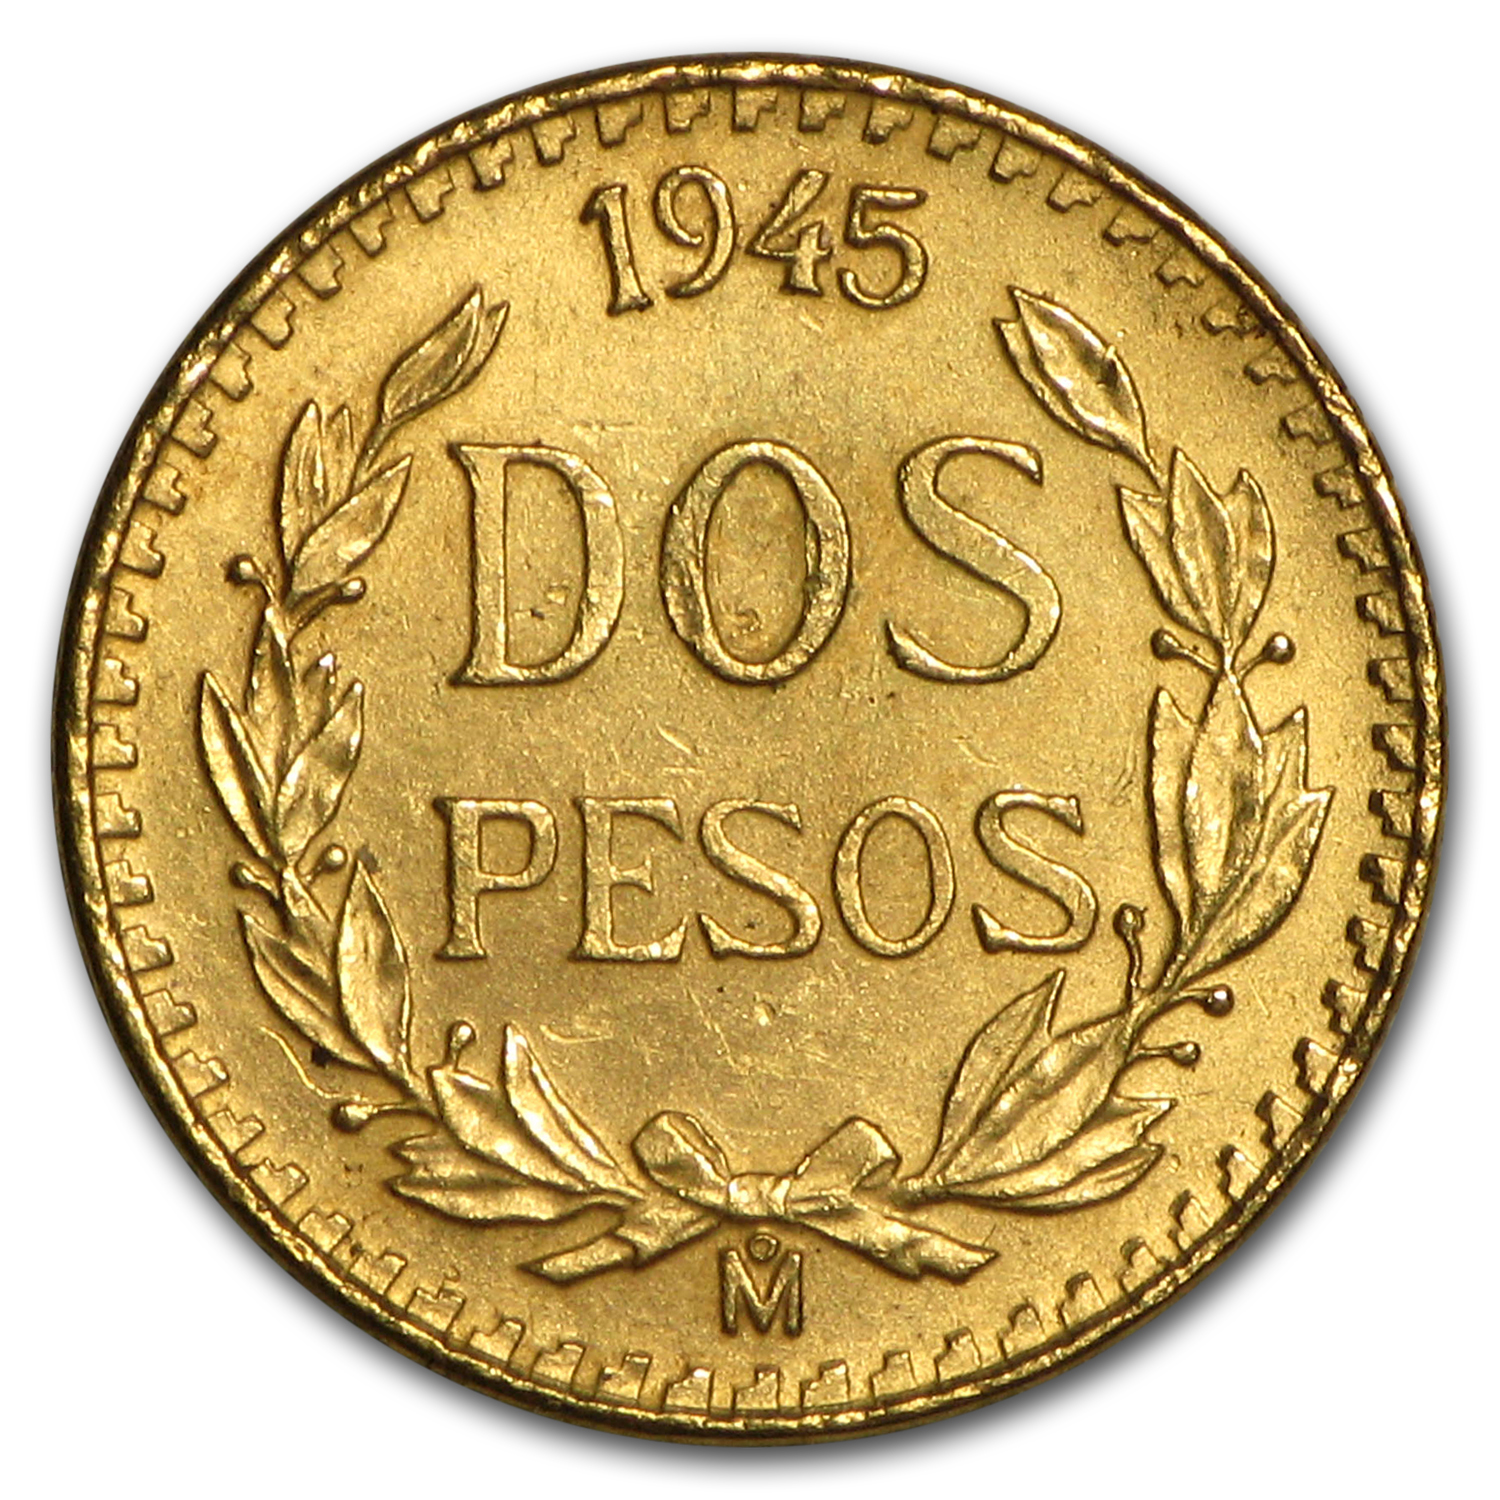 Mexico Gold 2 Pesos Cleaned Random Dates Gold 2 Pesos